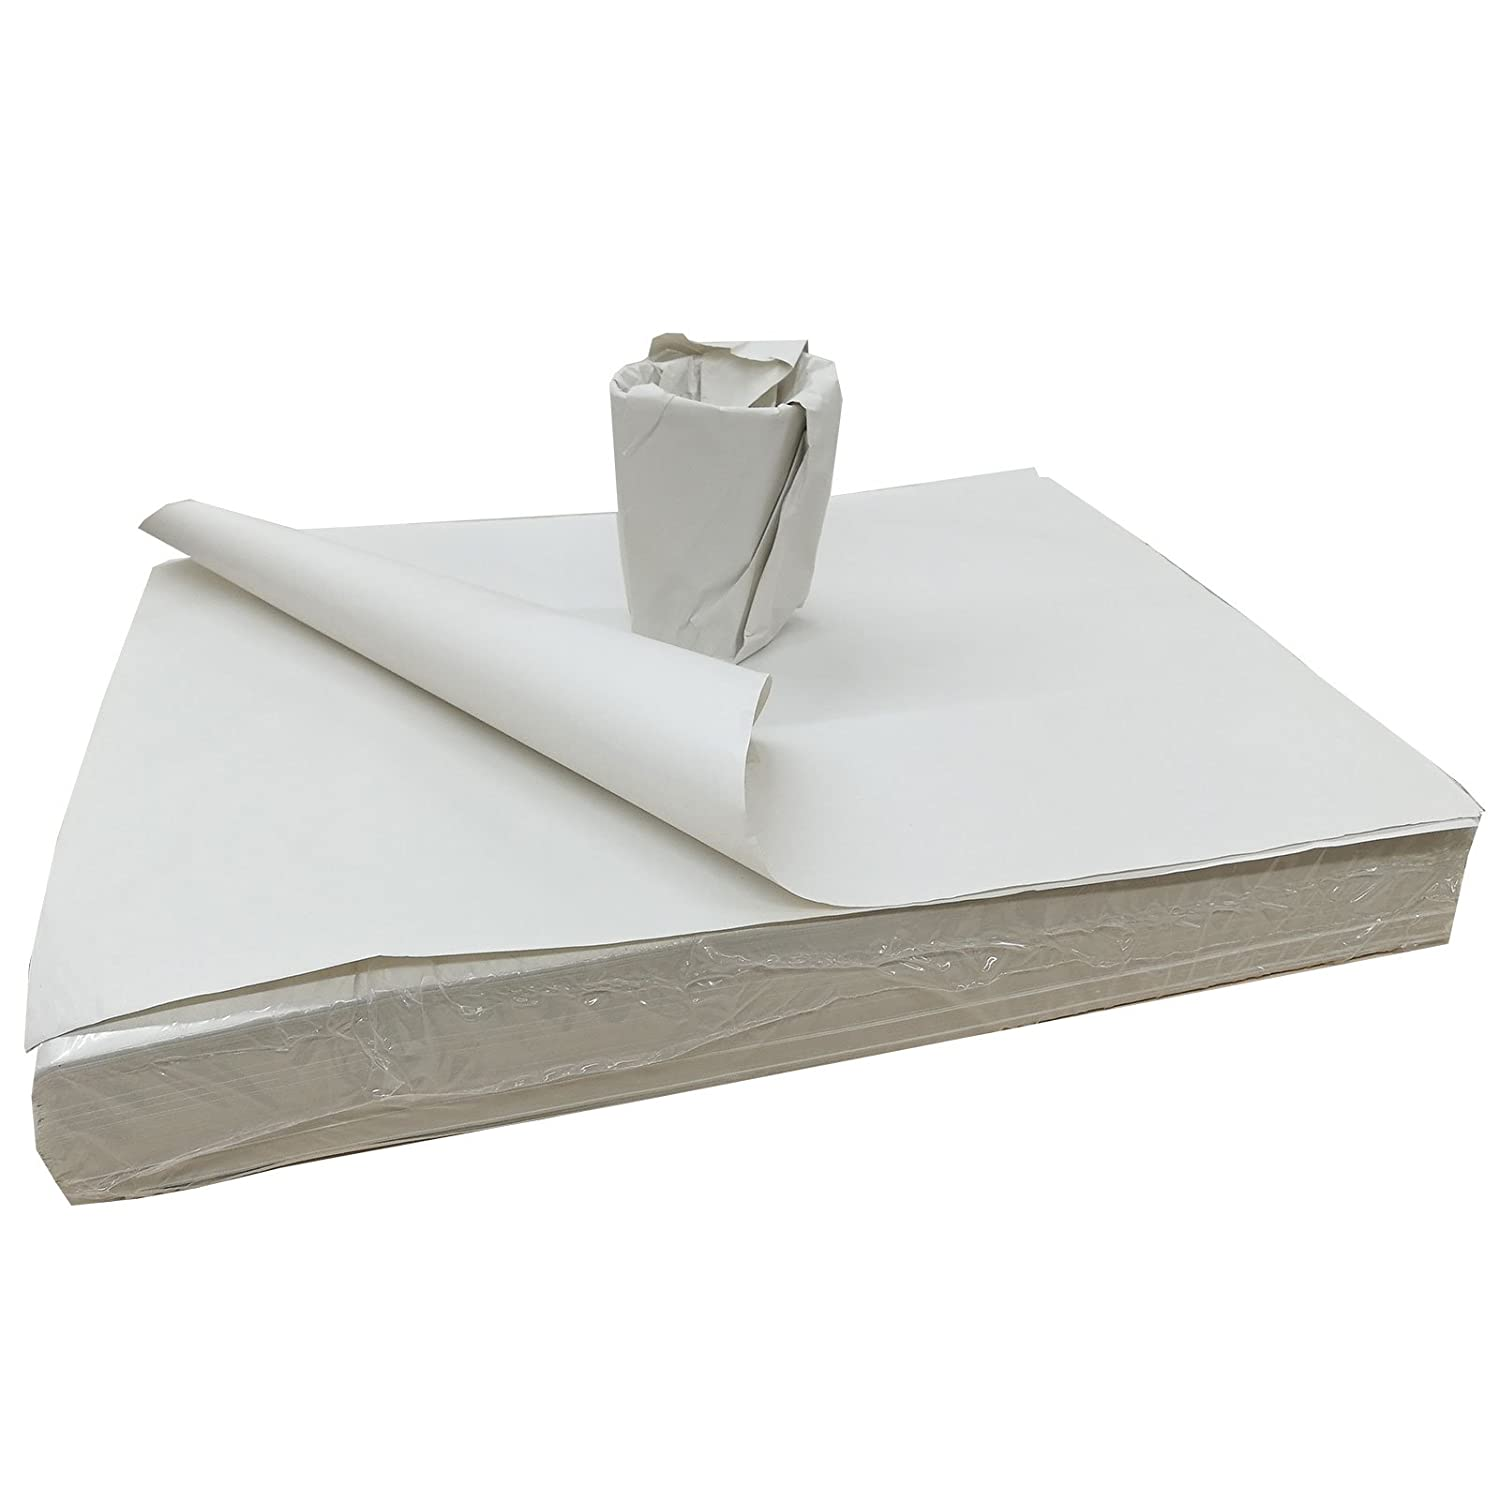 """500 Sheets Of WHITE PACKING PAPER Wrapping Food 15/""""x20/"""" Newspaper Offcuts"""